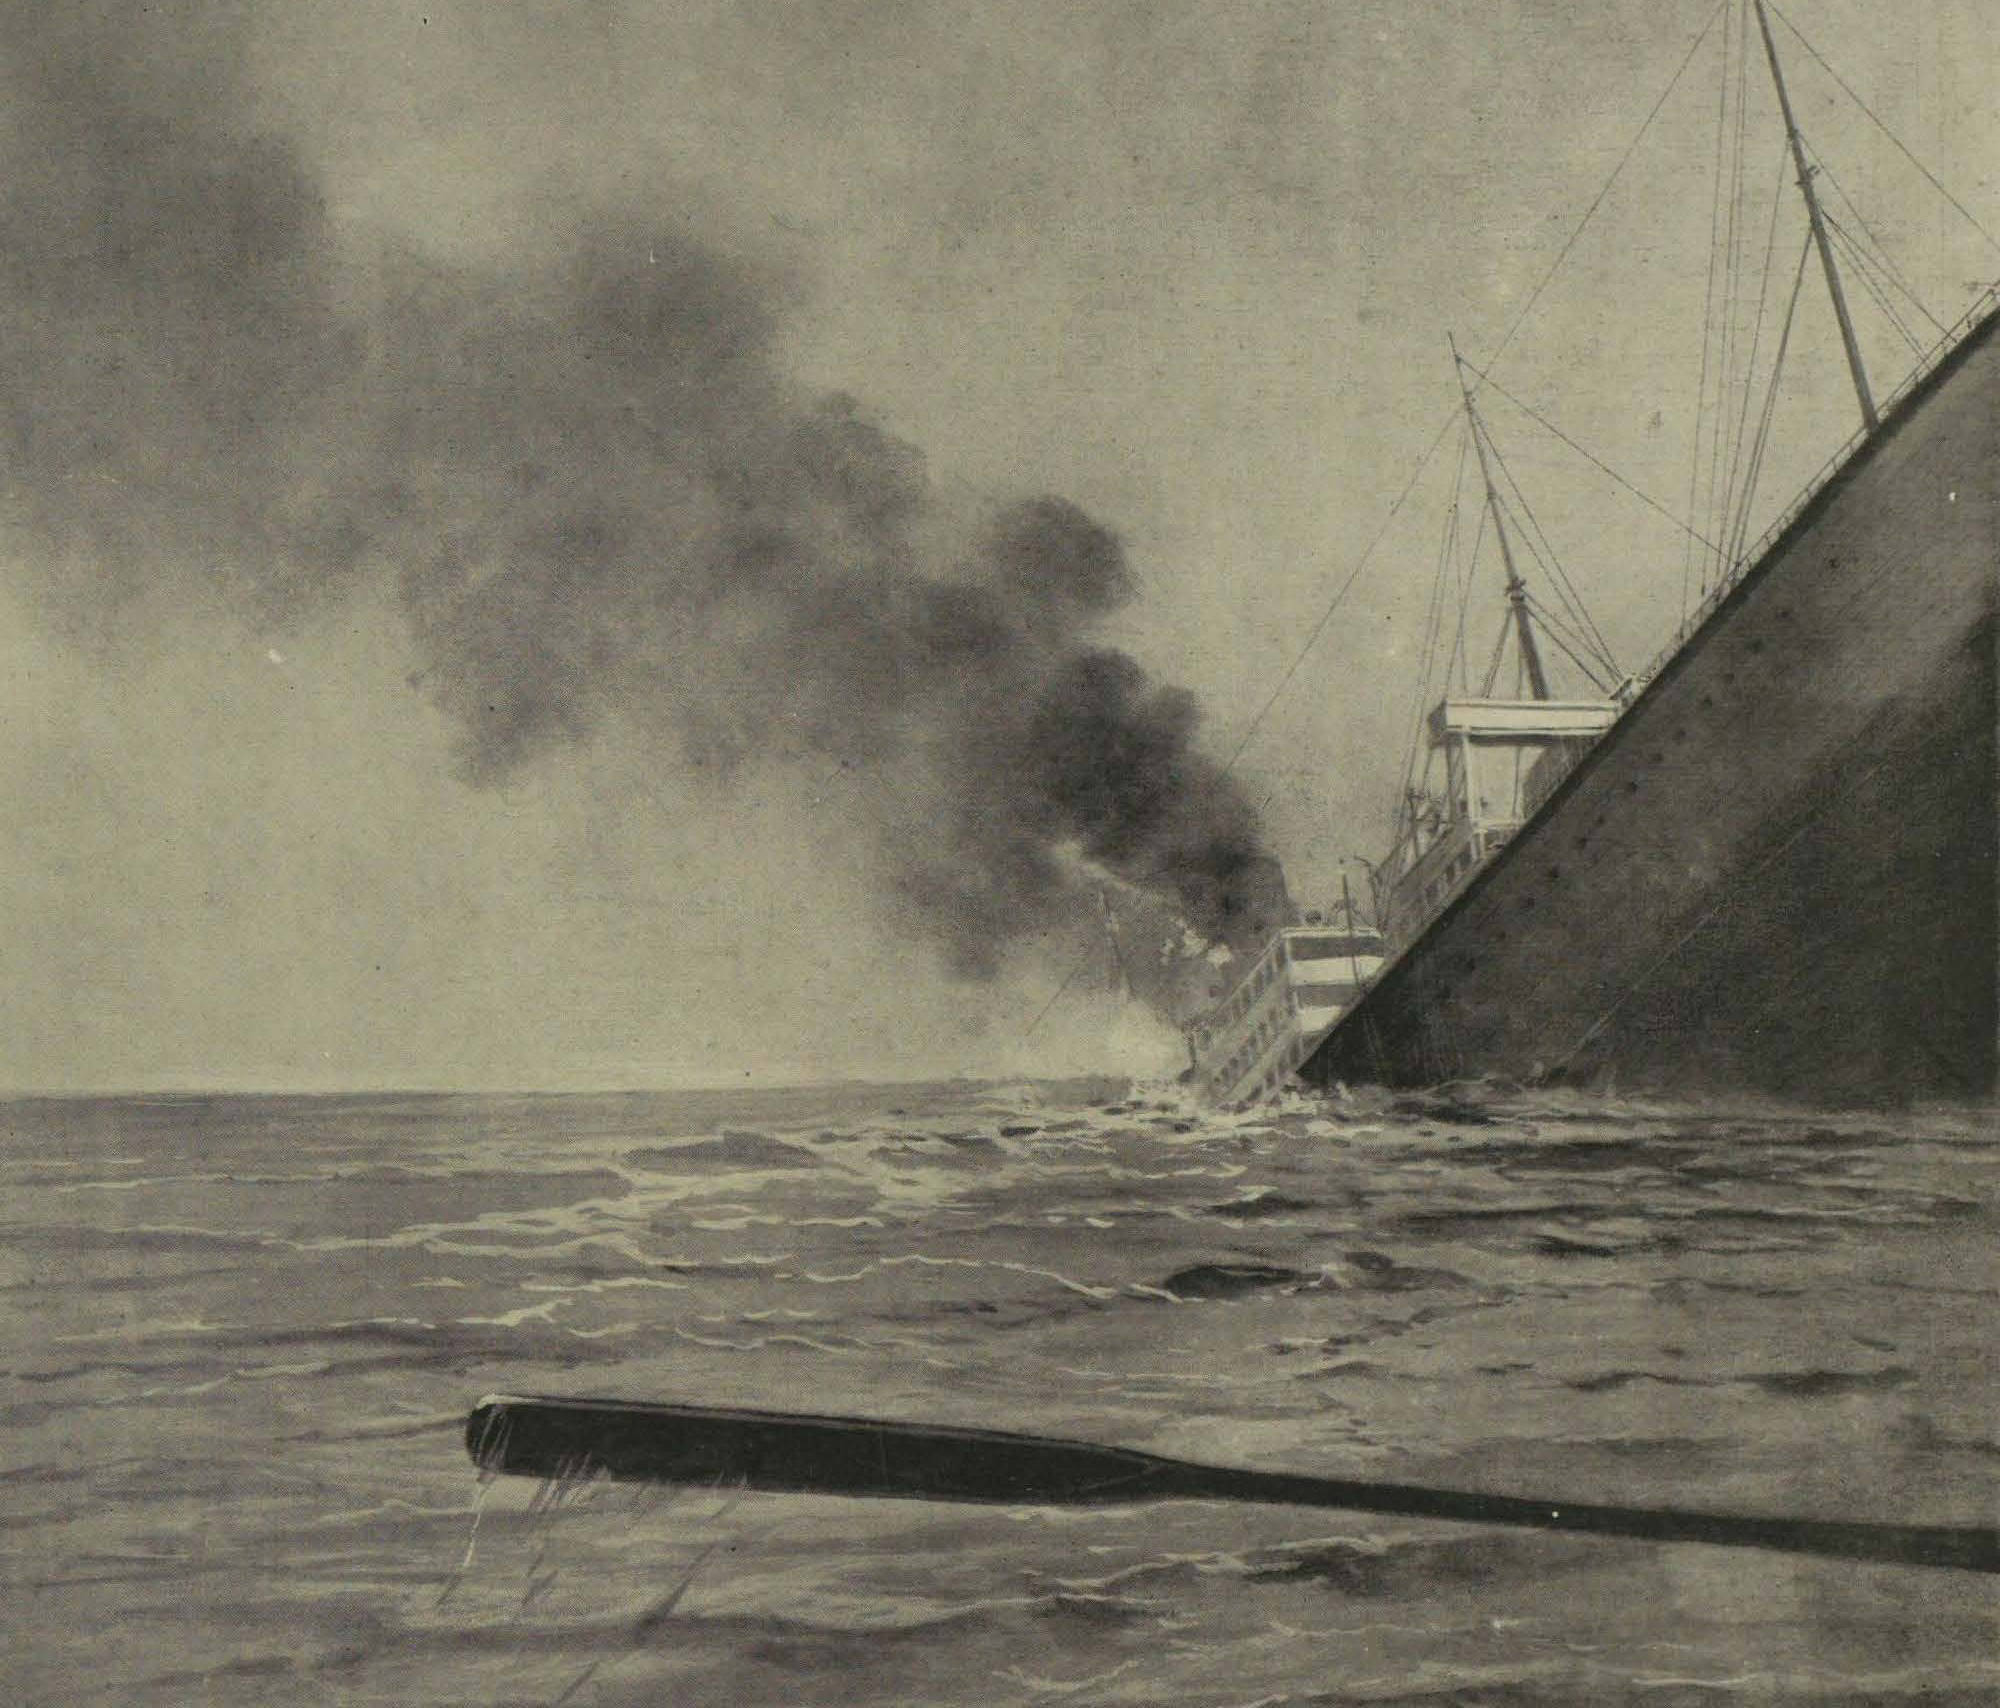 A German submarine sinks the Arabic ocean liner, August 19, 1915.